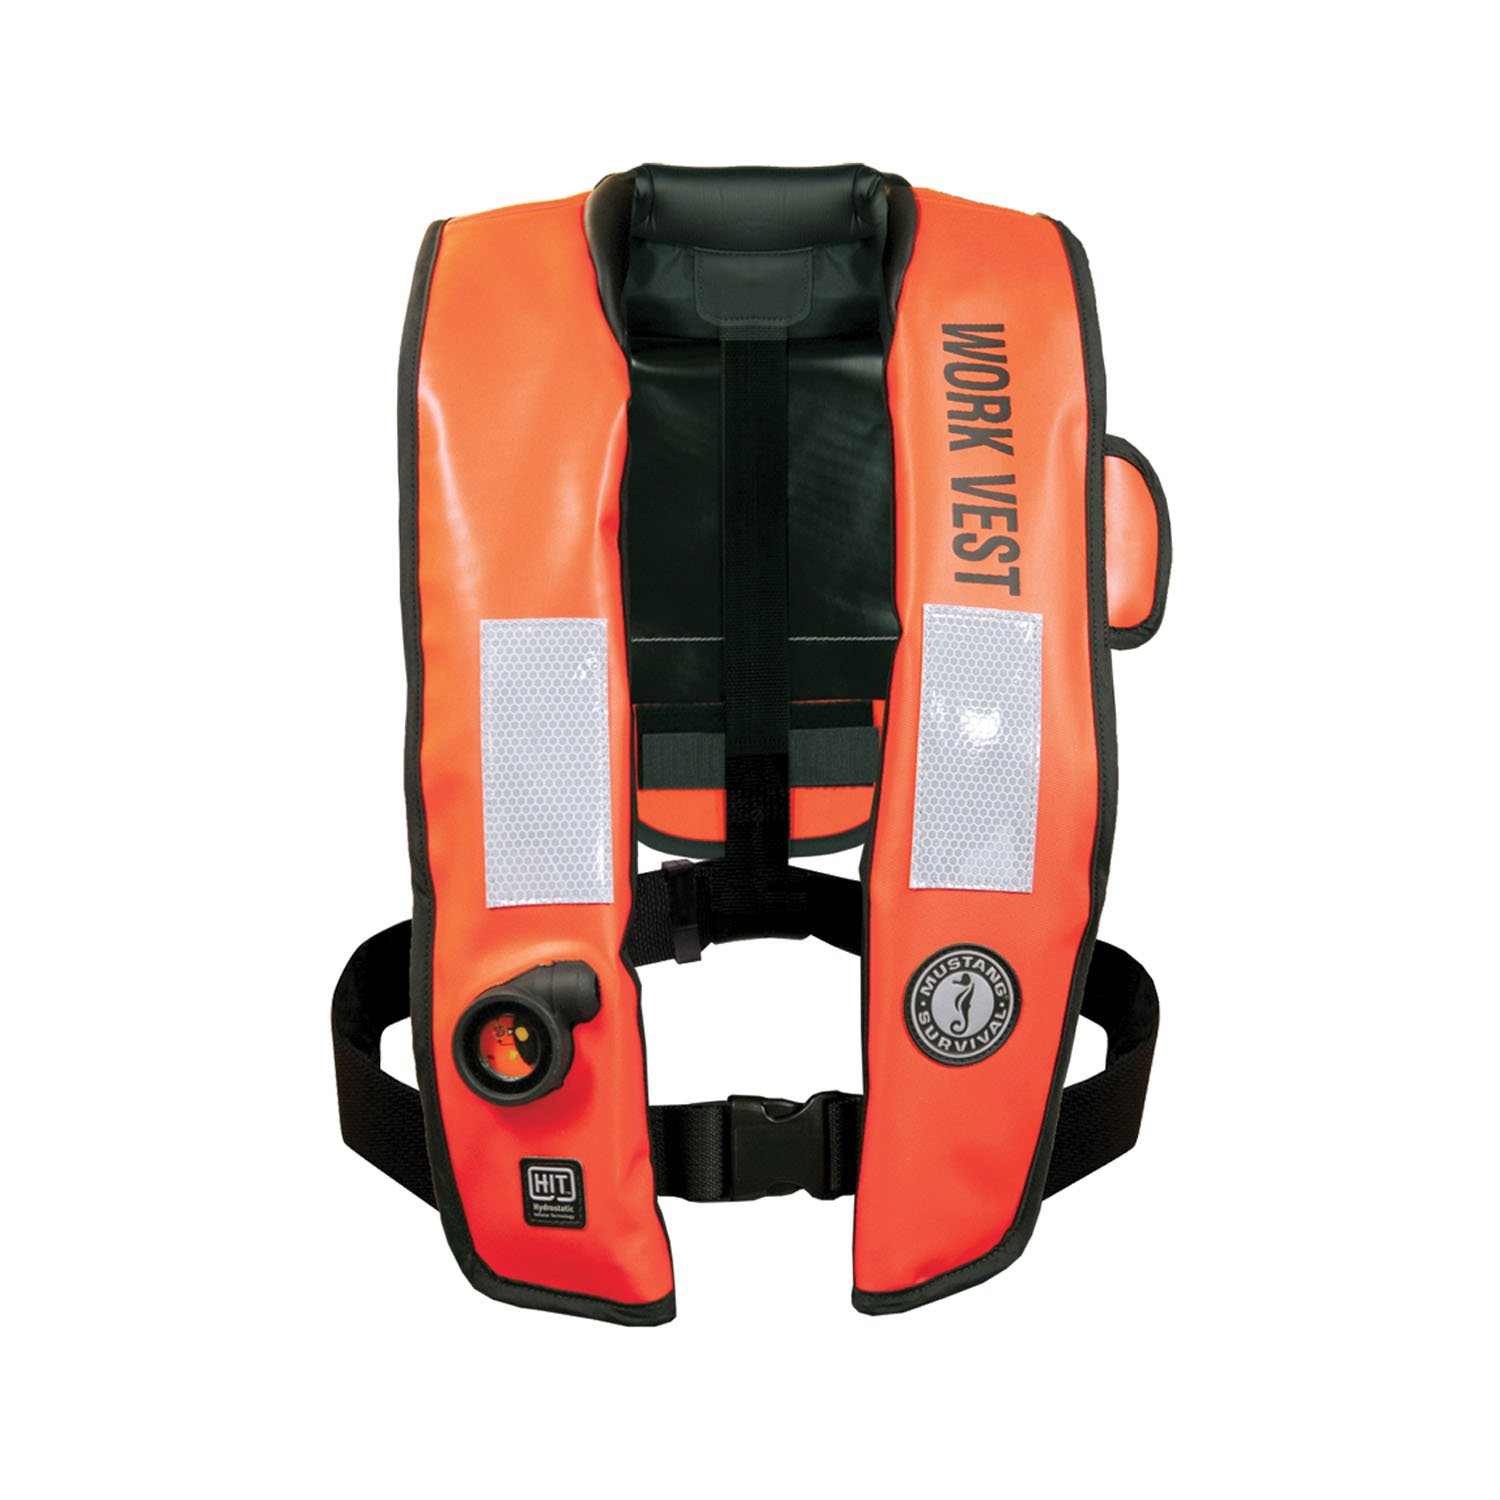 Mustang Inflatable Work Vest WithHIT Orange by Mustang Survival   B00C7MEWGC